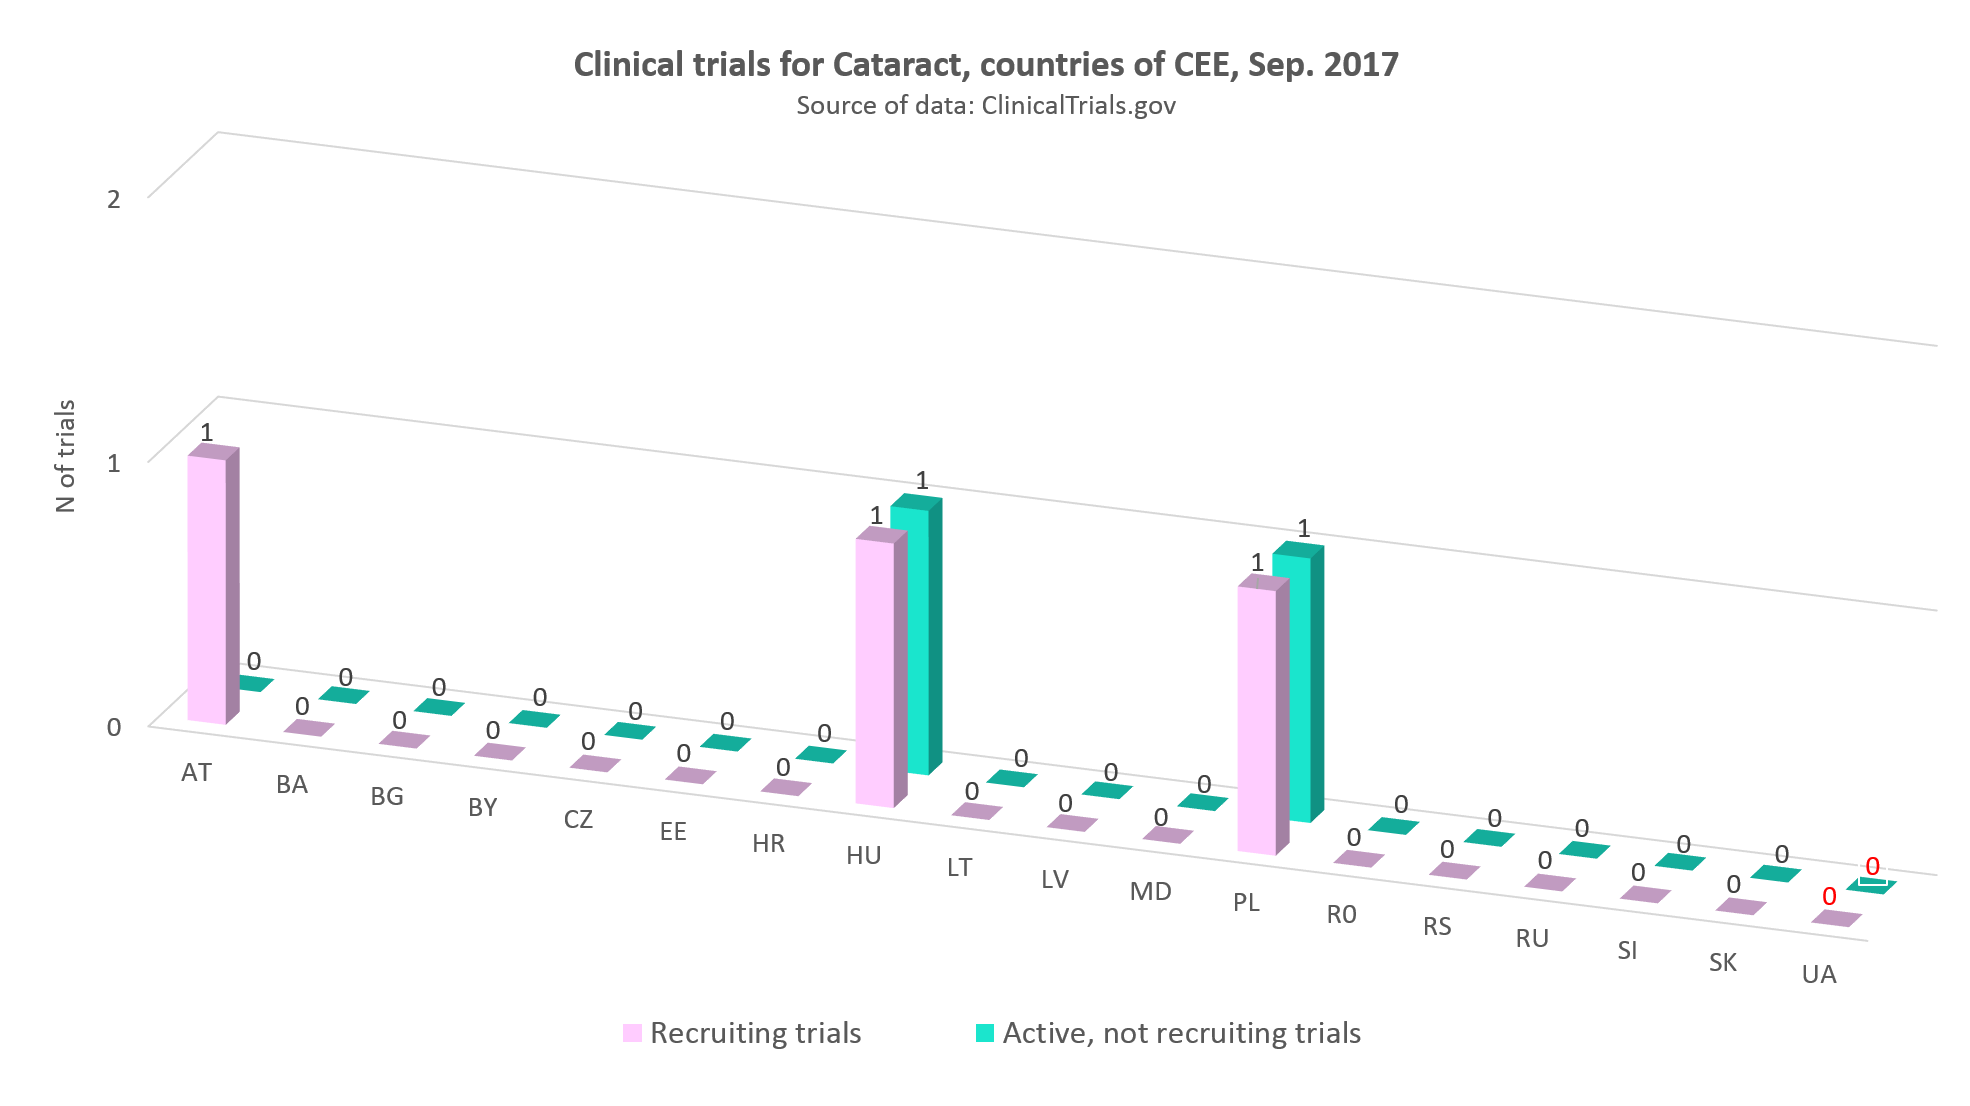 Clinical trials for cataract in countries of CEE, September 2017